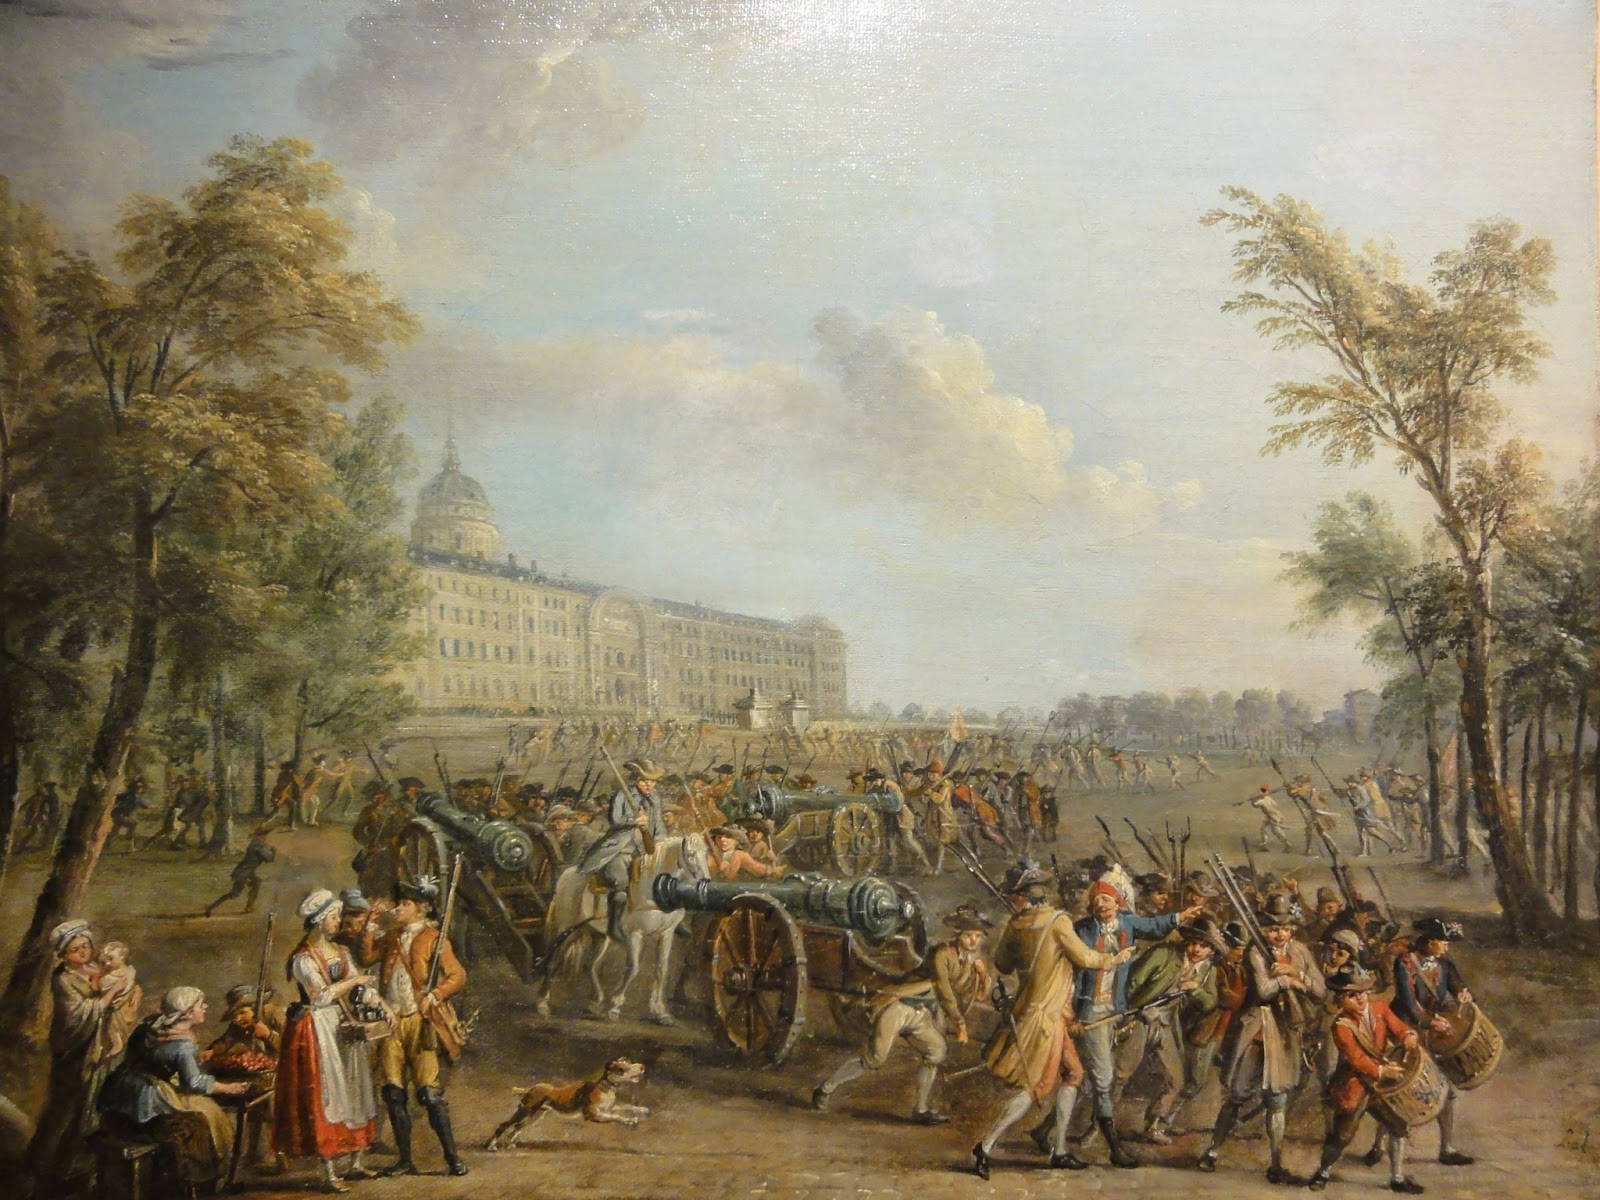 The 1848 Revolution in France sometimes known as the February Revolution révolution de Février was one of a wave of revolutions in 1848 in Europe